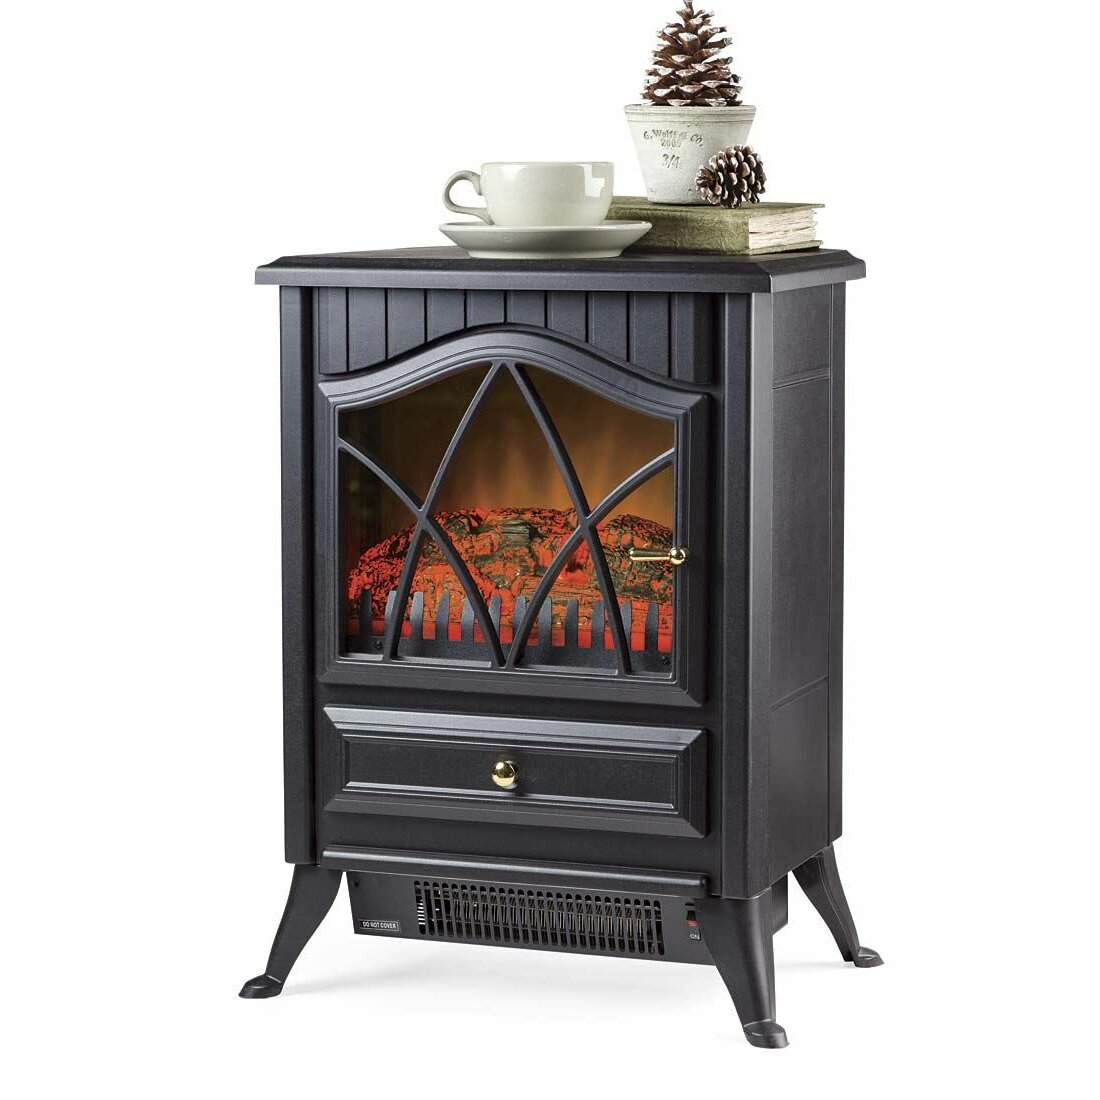 Small Electric Stoves With Ovens ~ Compact electric stove wayfair